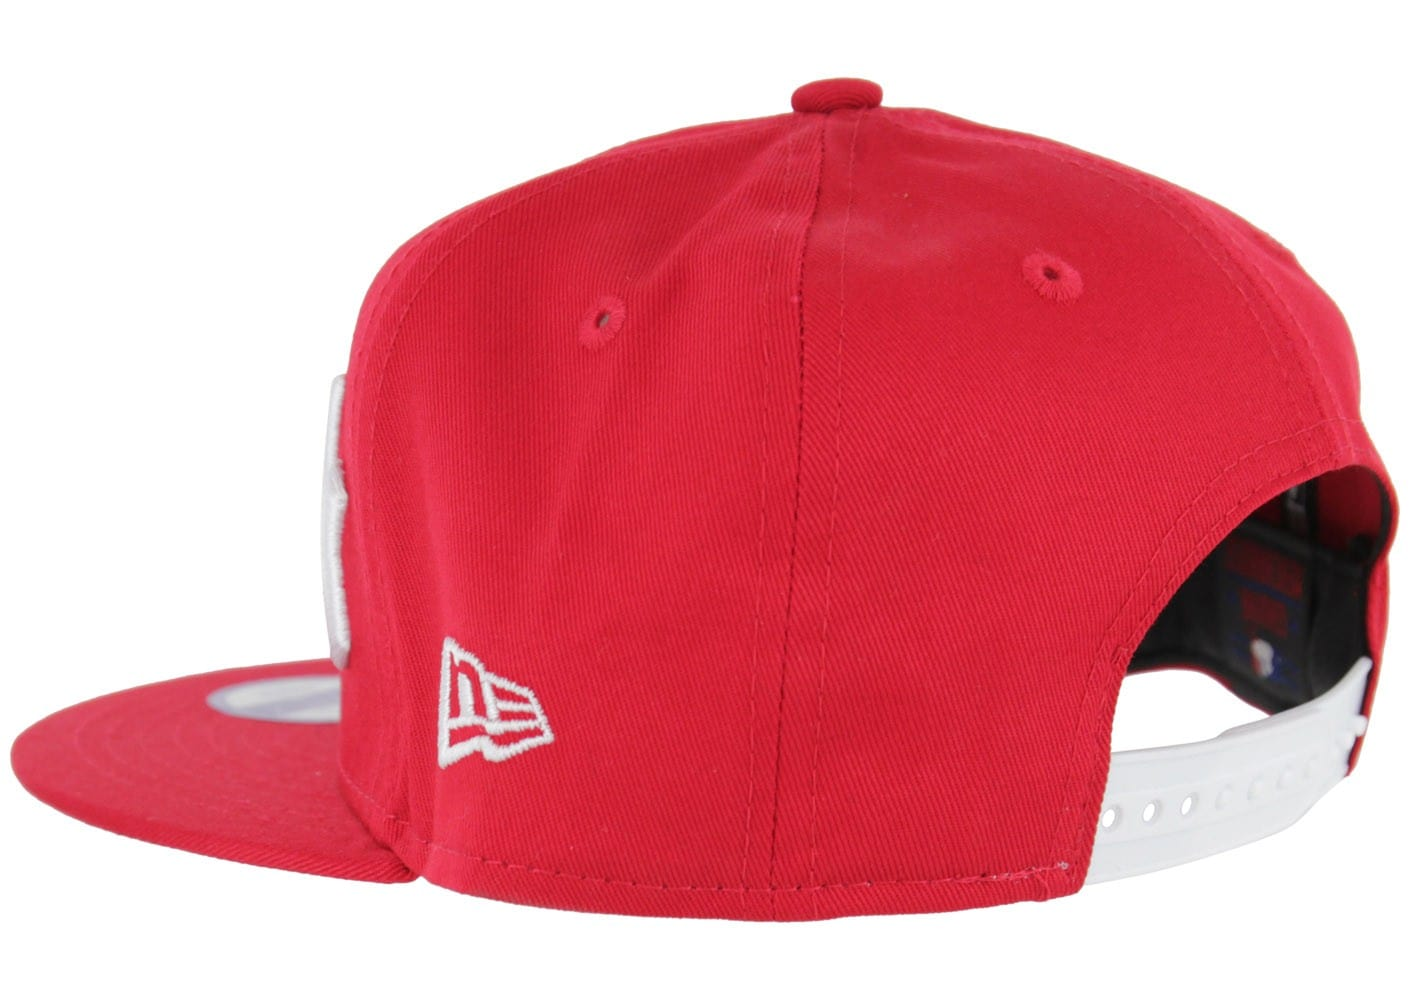 new era casquette snapback ny wordmark rouge accessoires chausport. Black Bedroom Furniture Sets. Home Design Ideas